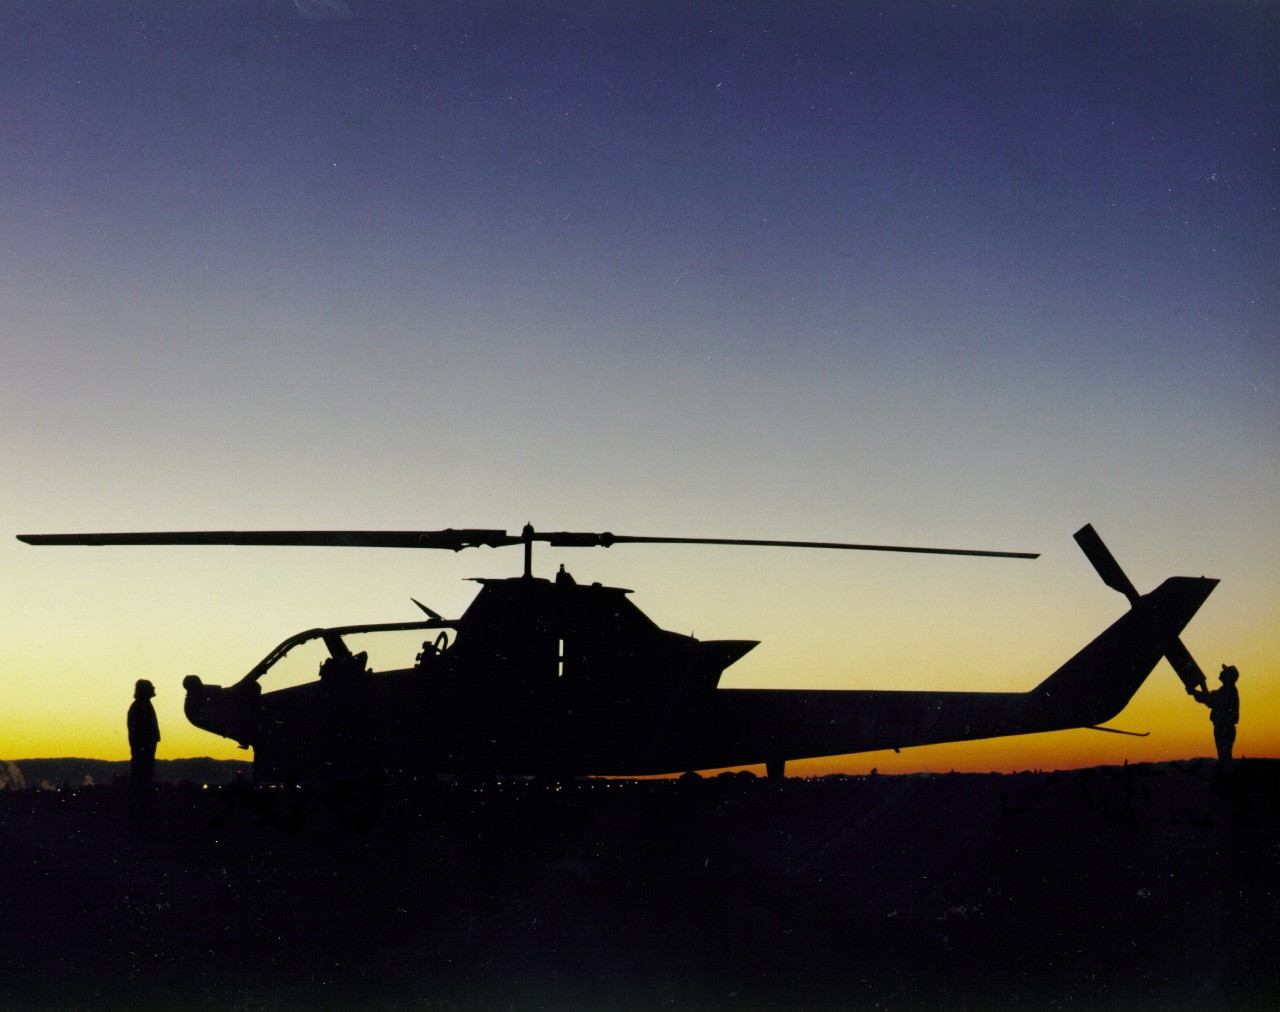 A TH-1S (NASA-736) Cobra helicopter at sunrise on the ramp at the NASA Ames Research Center, Moffett Field, California.